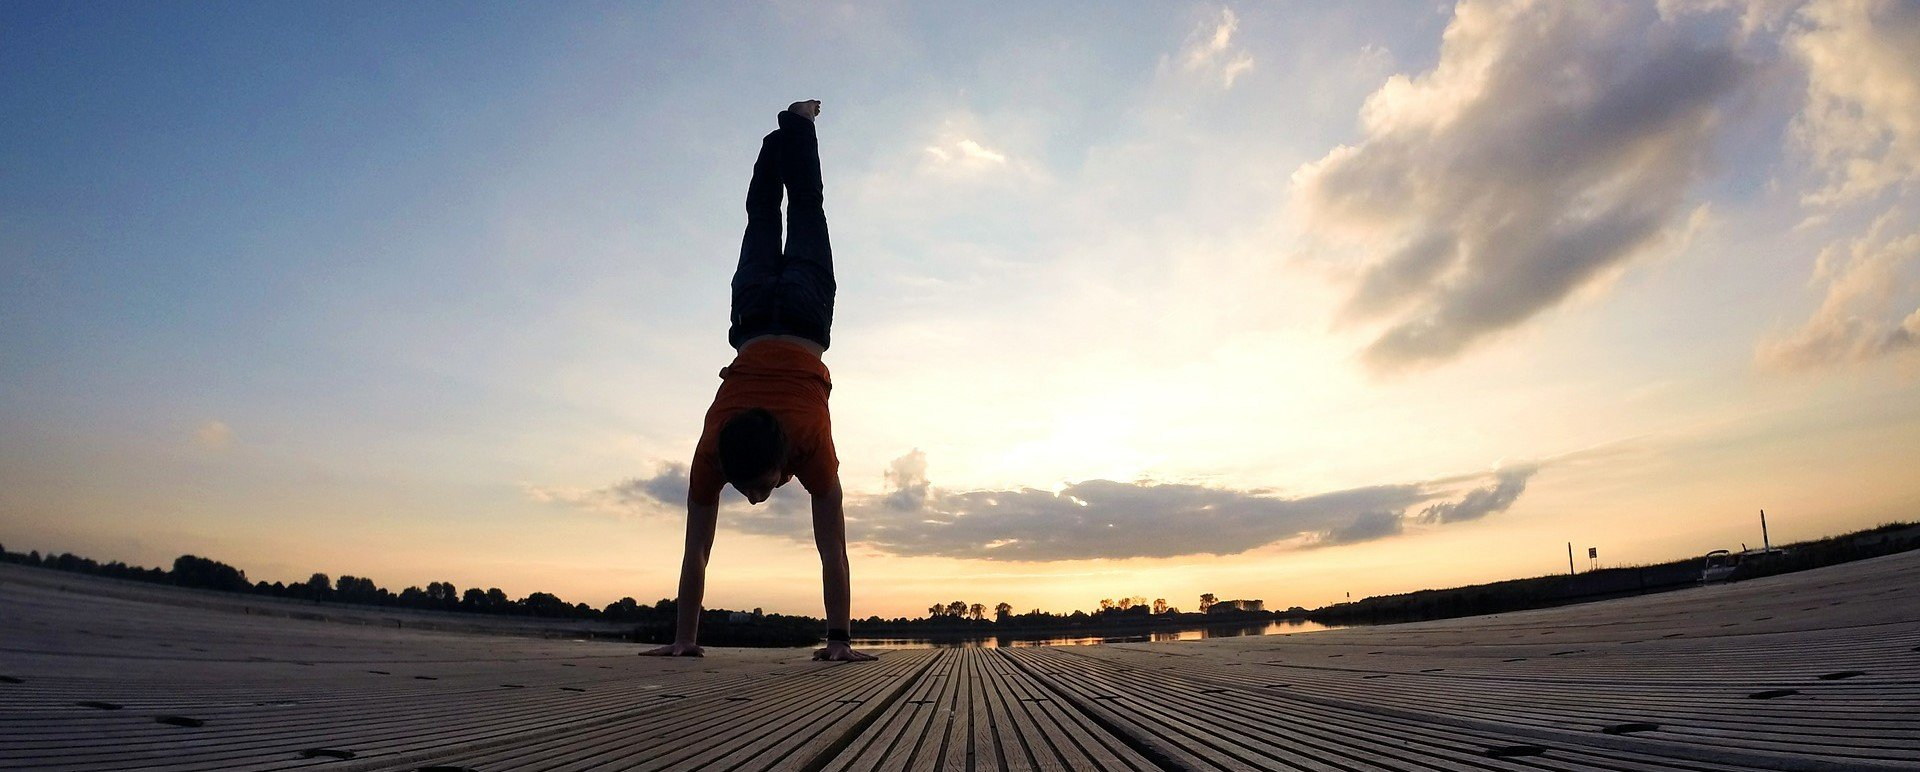 Now you know how to progress into a full handstand!!!